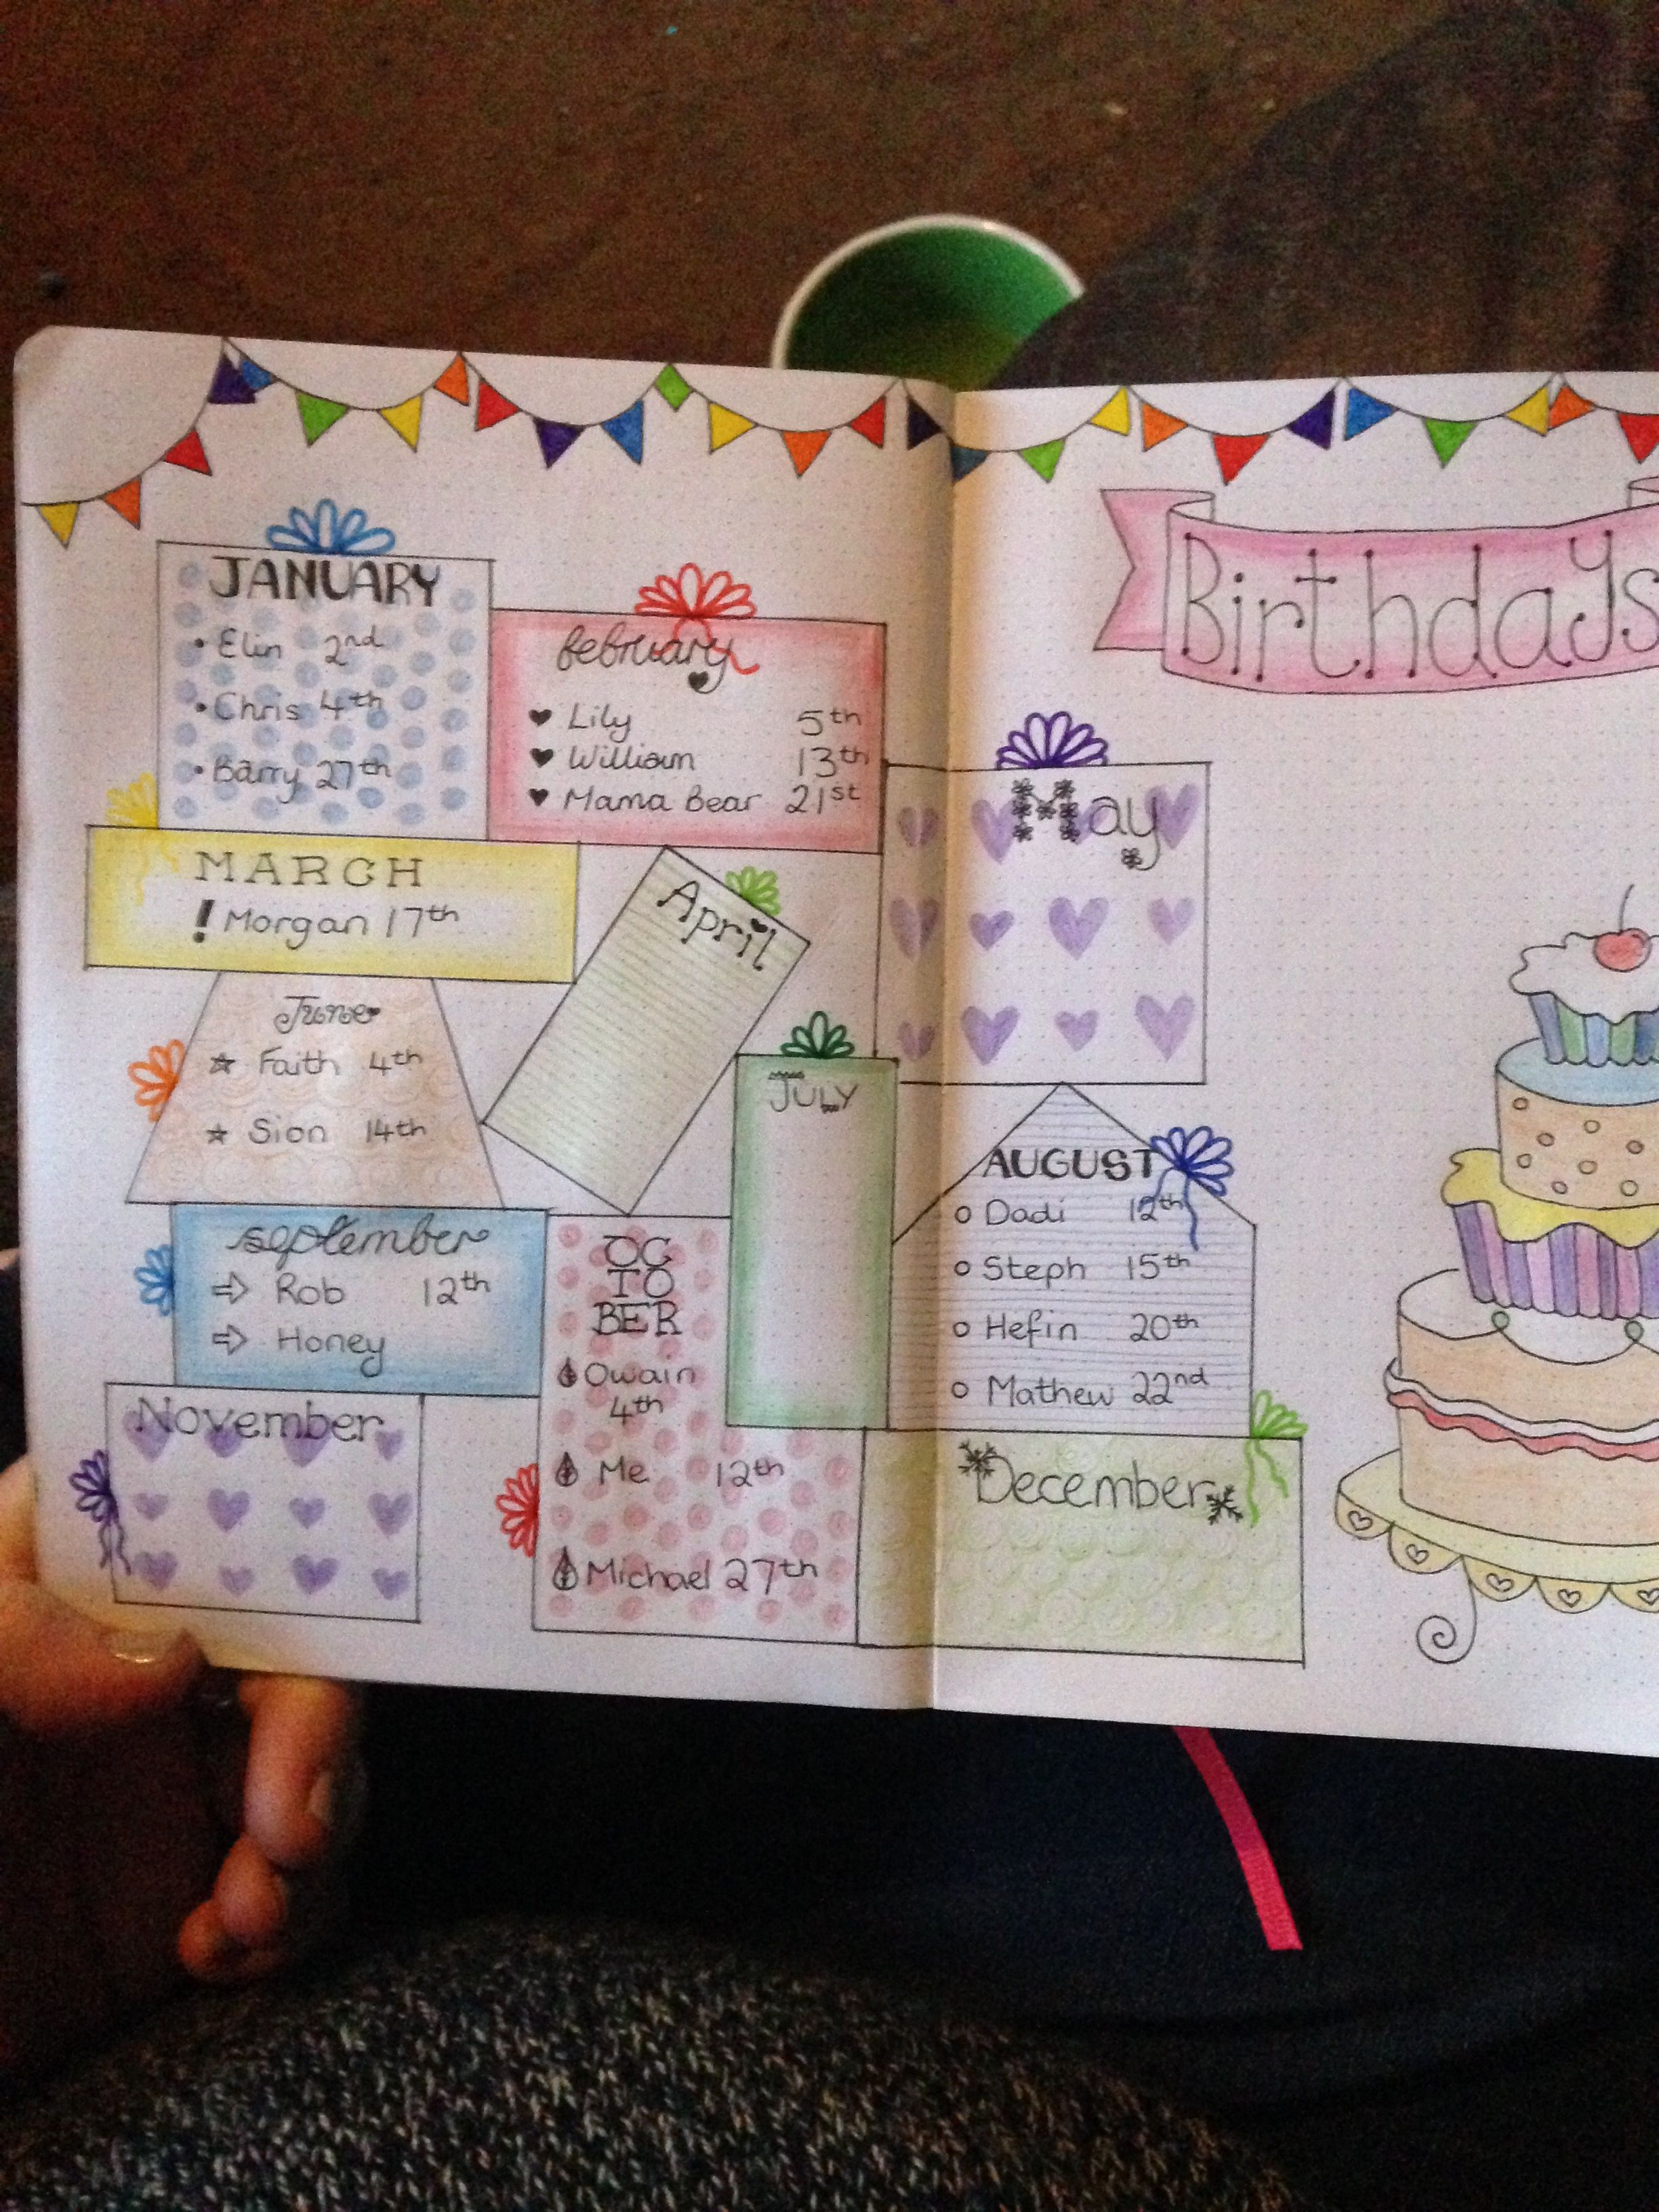 My birthday reminder pages in my bullet journal. Love this ...